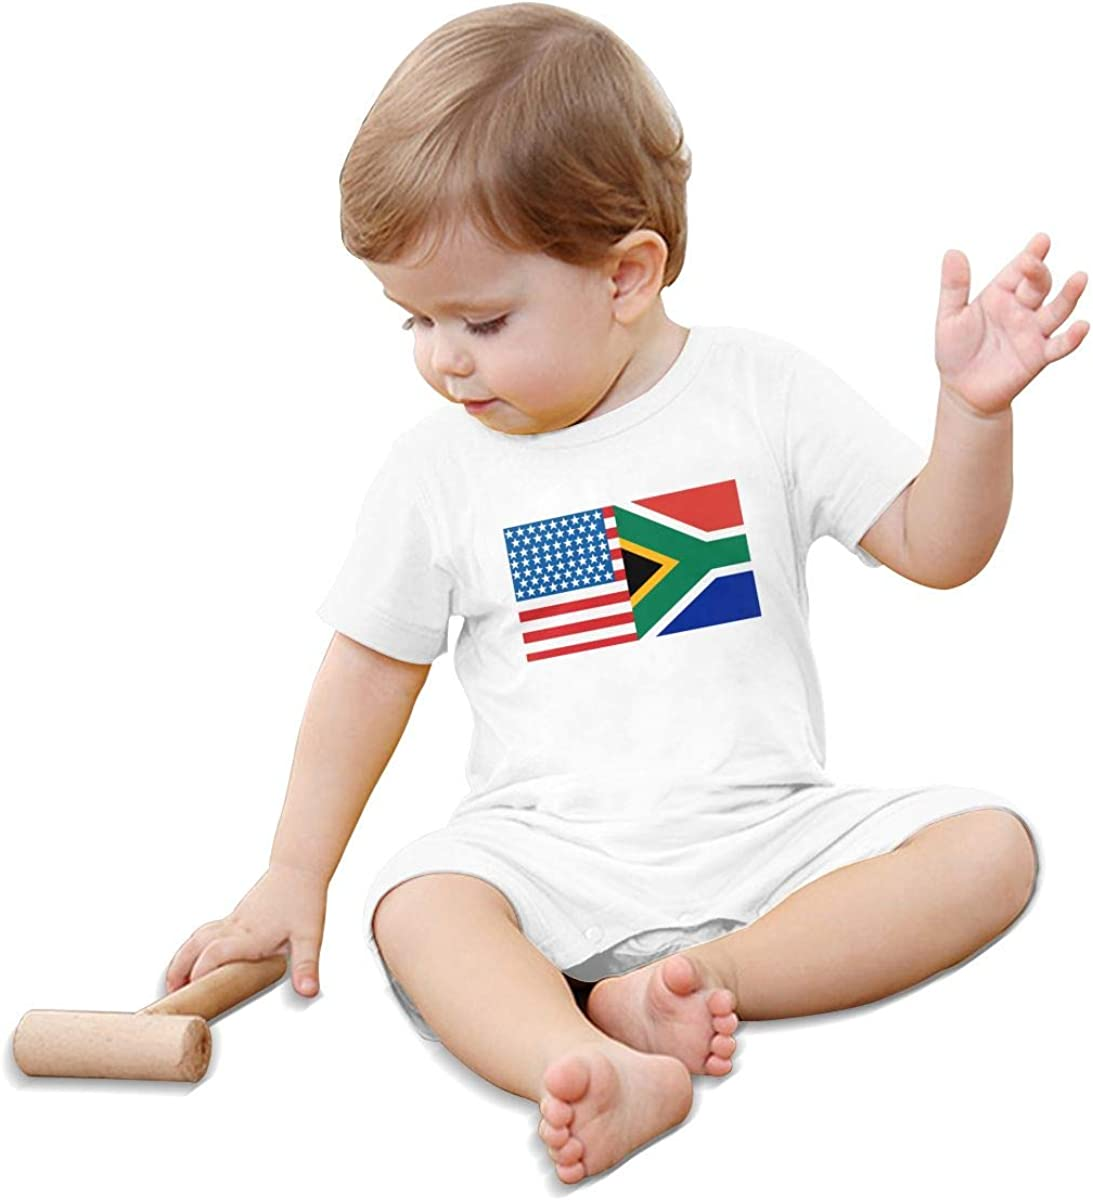 Mri-le1 Newborn Baby Jumpsuit American South African Flag Baby Clothes